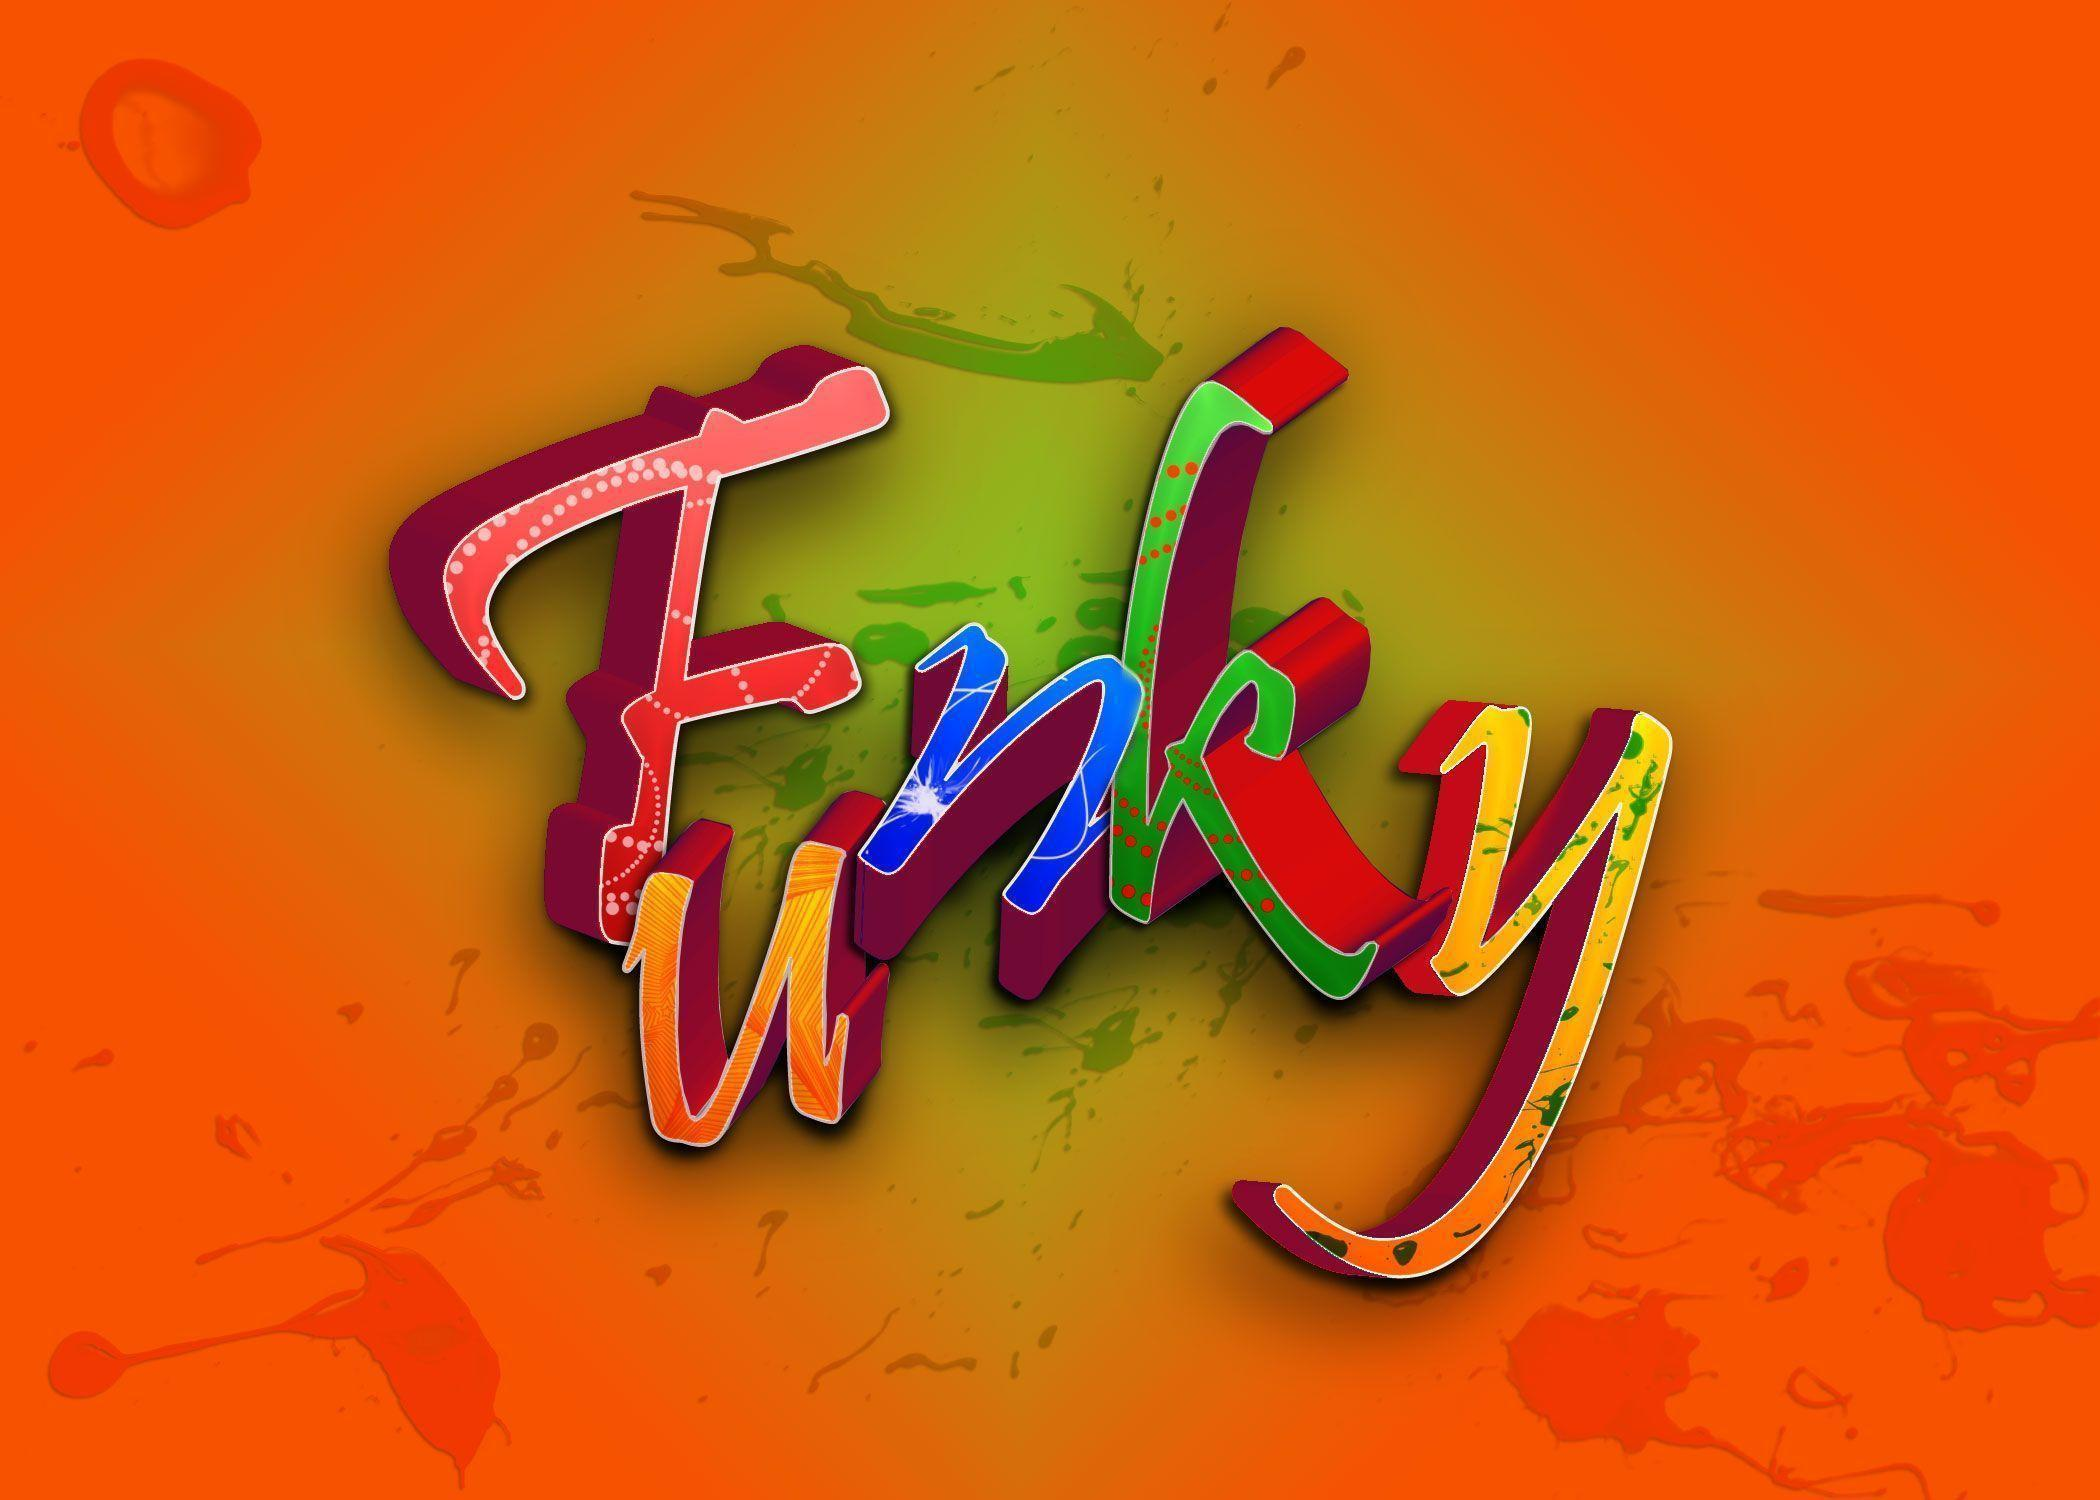 Funk Wallpapers 2100x1500